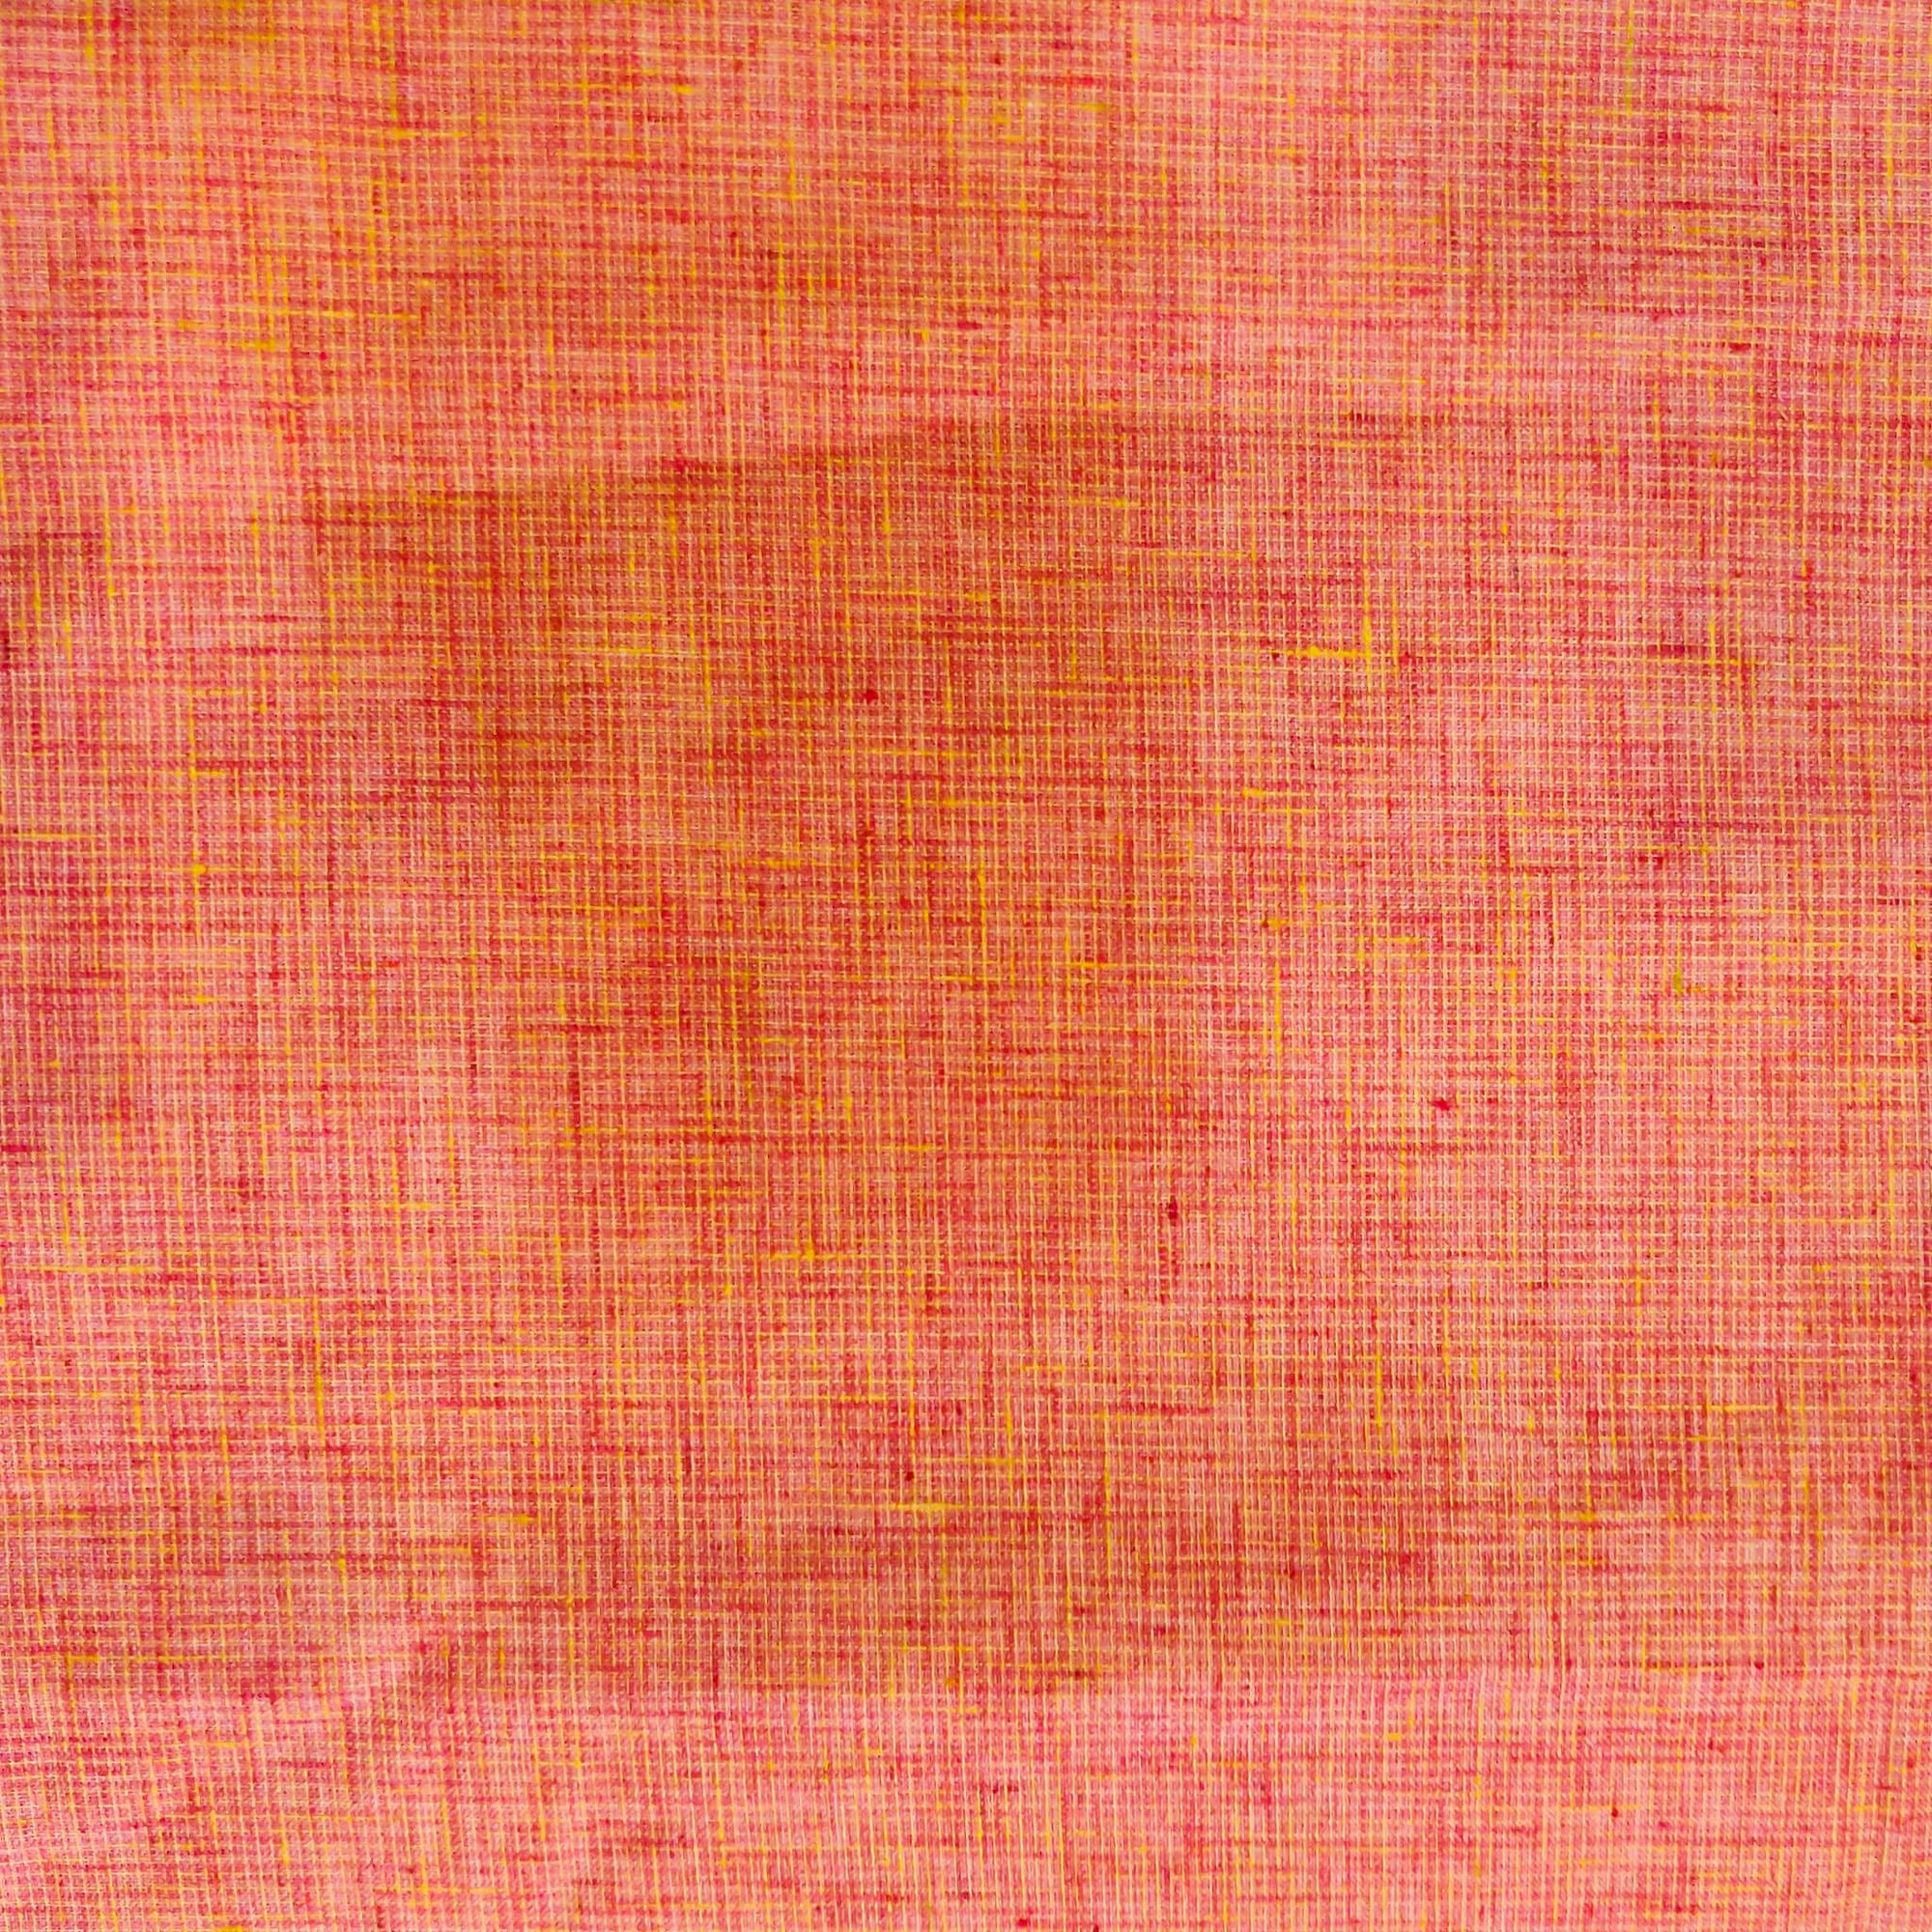 Pure Cotton Handloom Pink With Red Yellow Tint Hand Woven Fabric